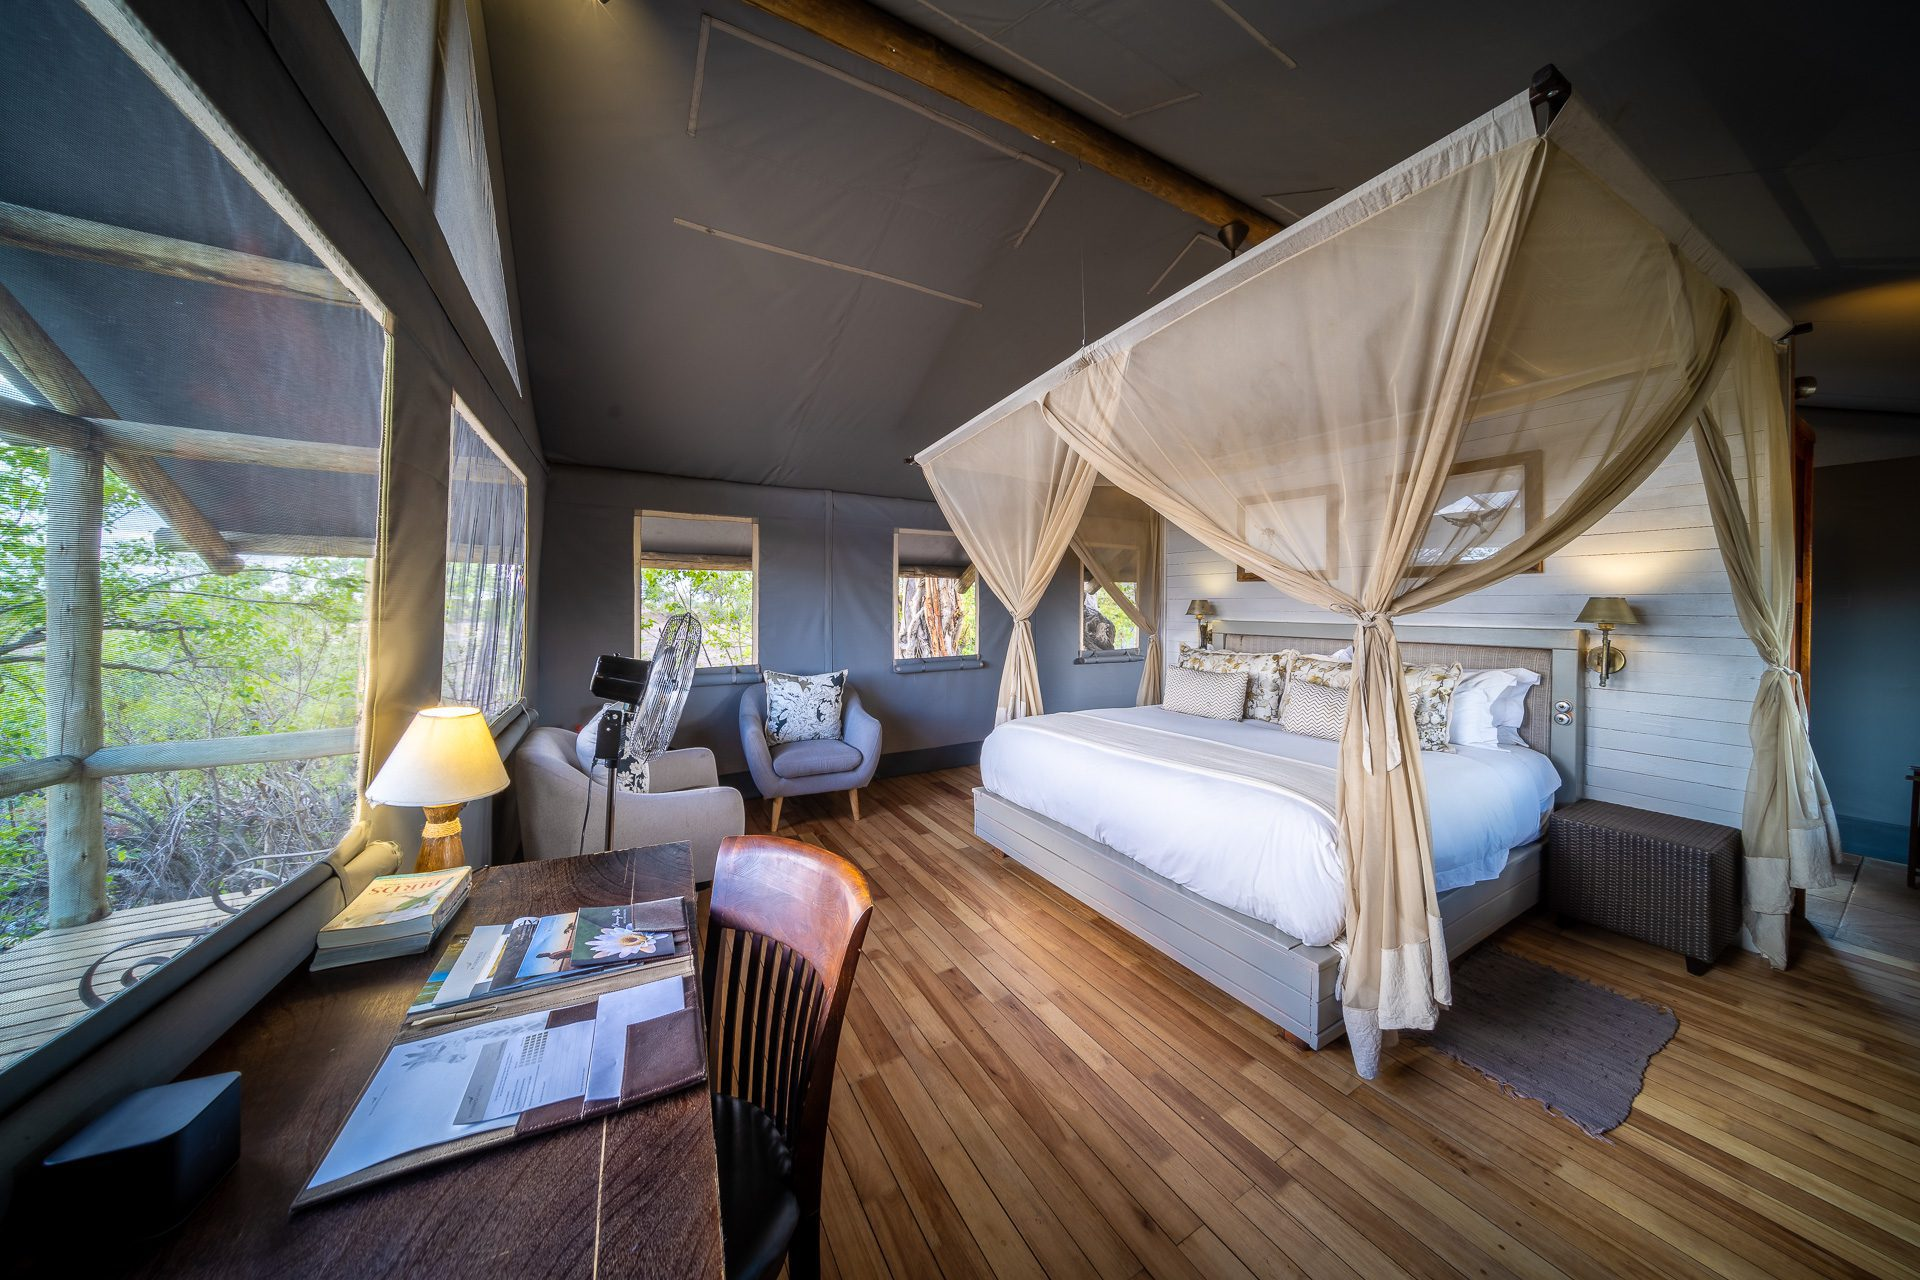 stay at seba camp interior room view of bed with nets drawn back on our off-grid Botswana safari